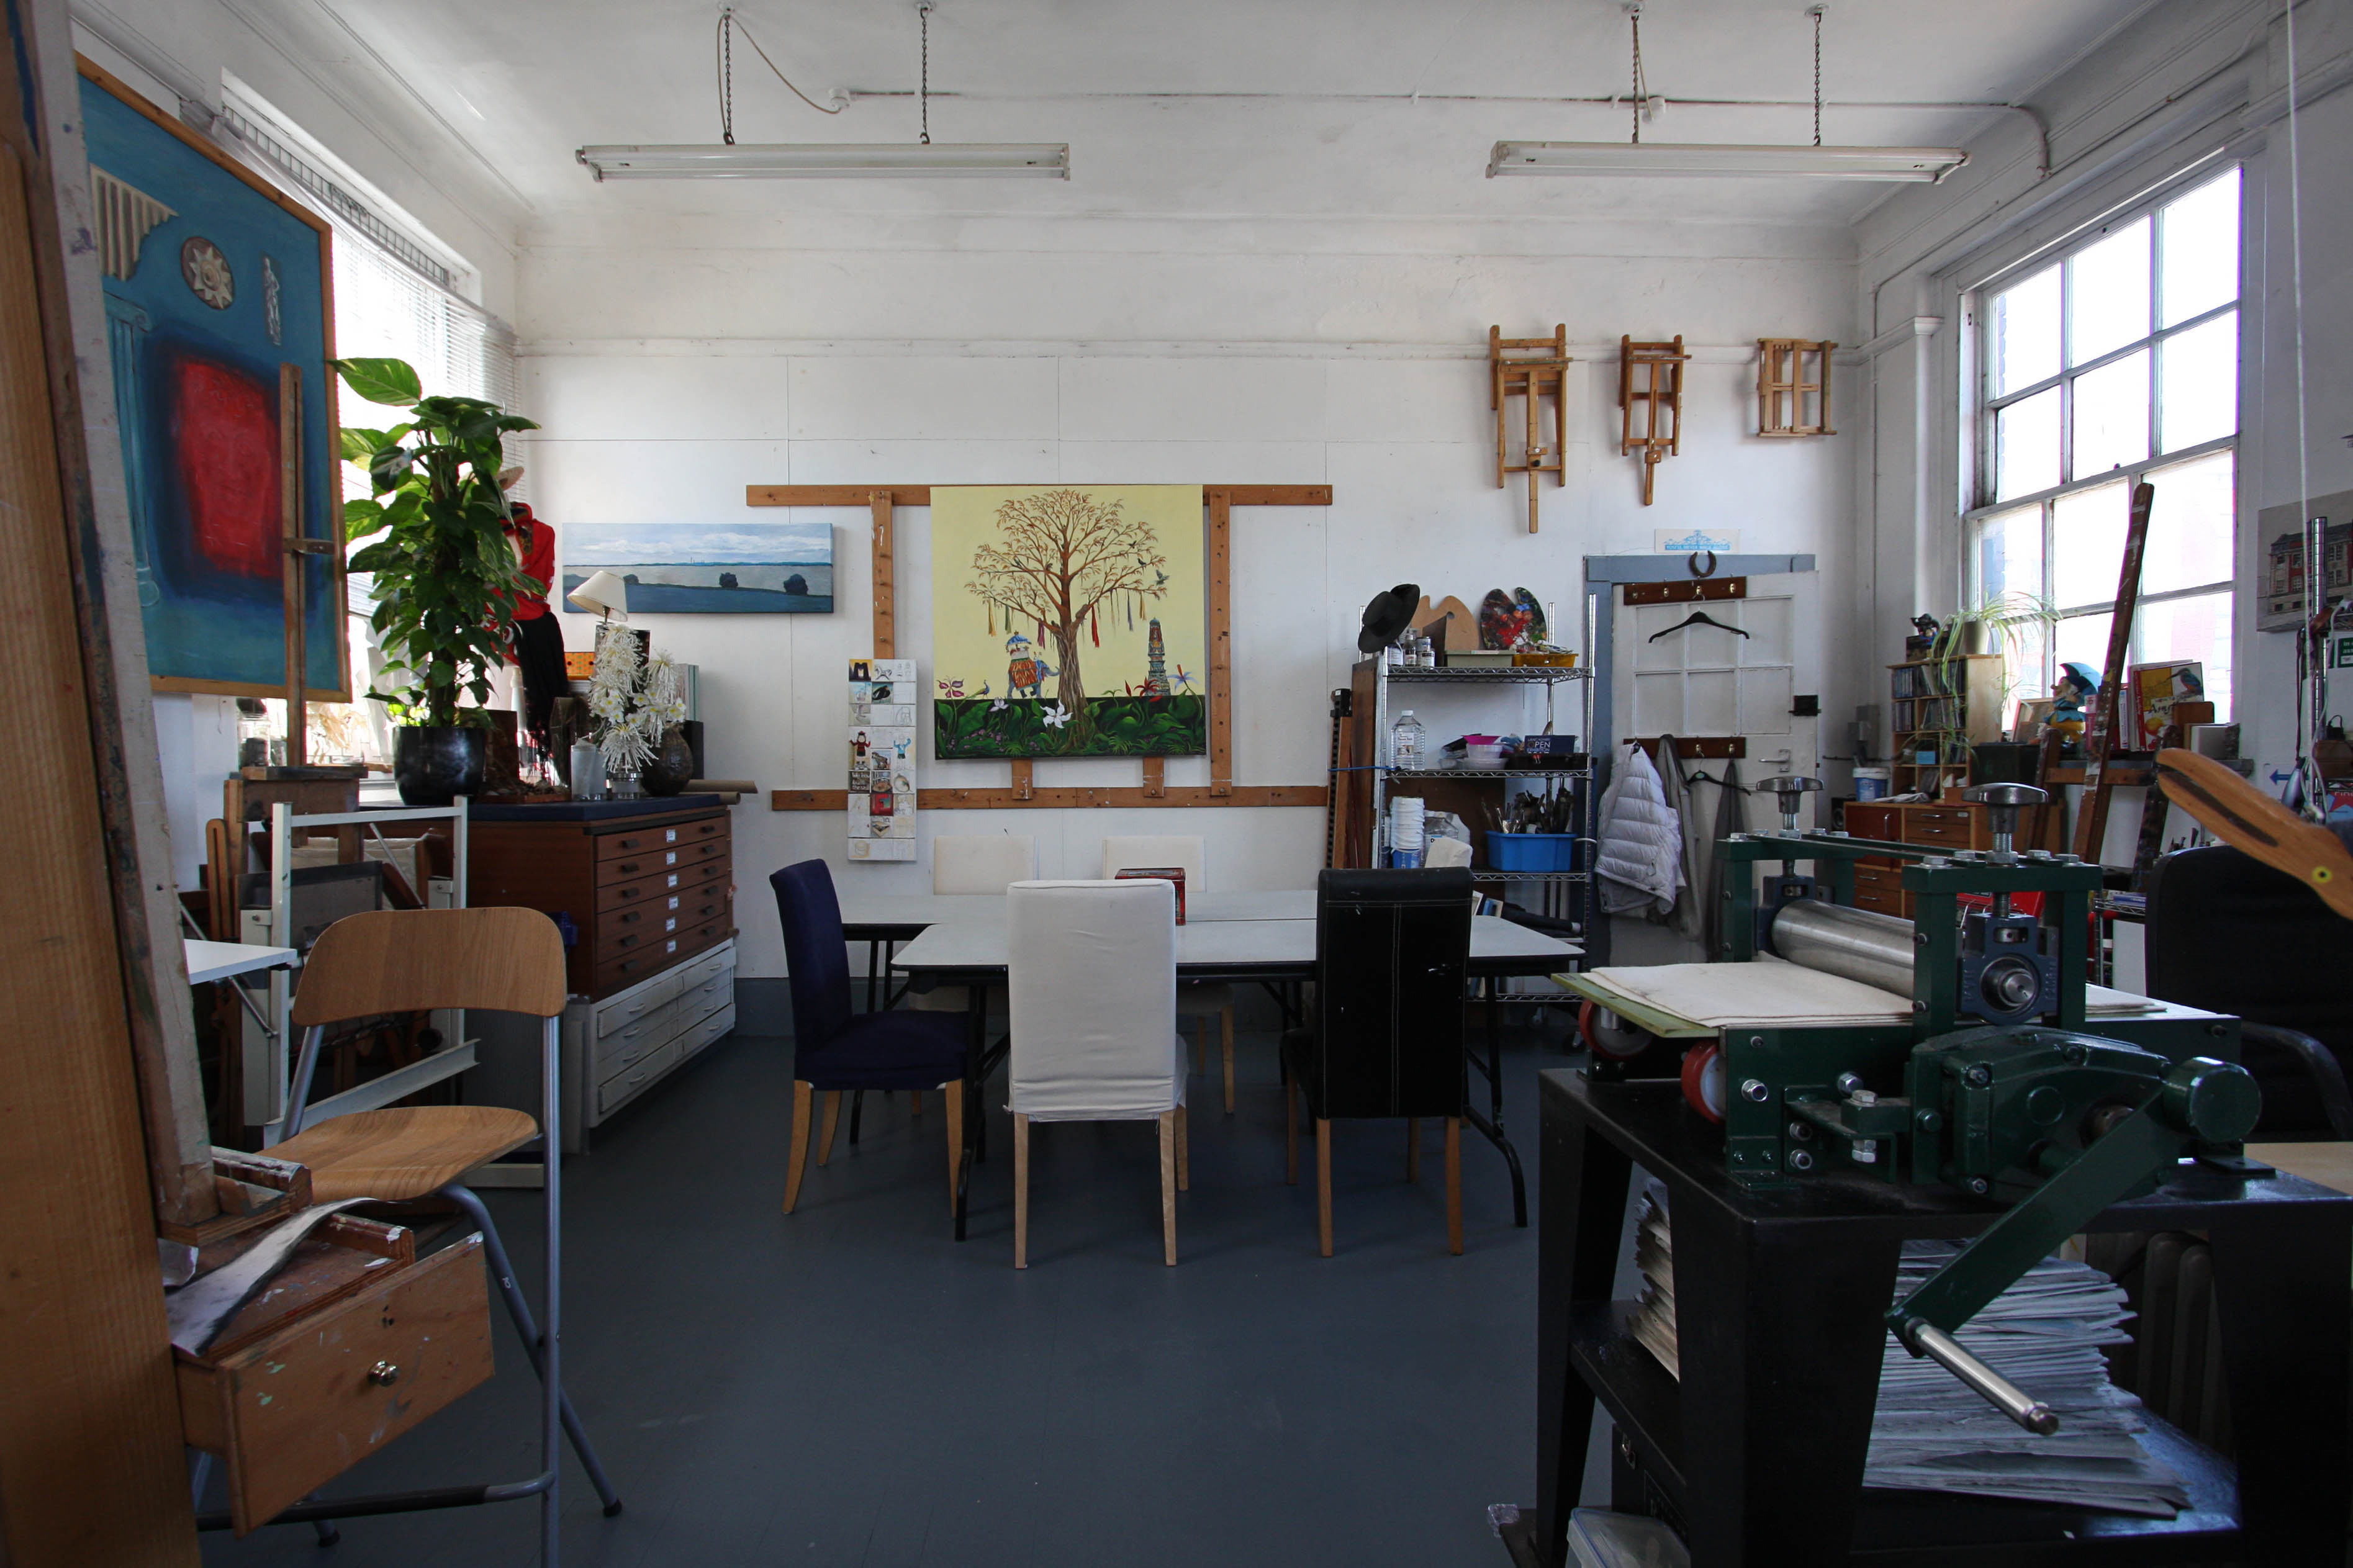 Bridewell Studios: Drawing, Painting & Printmaking classes